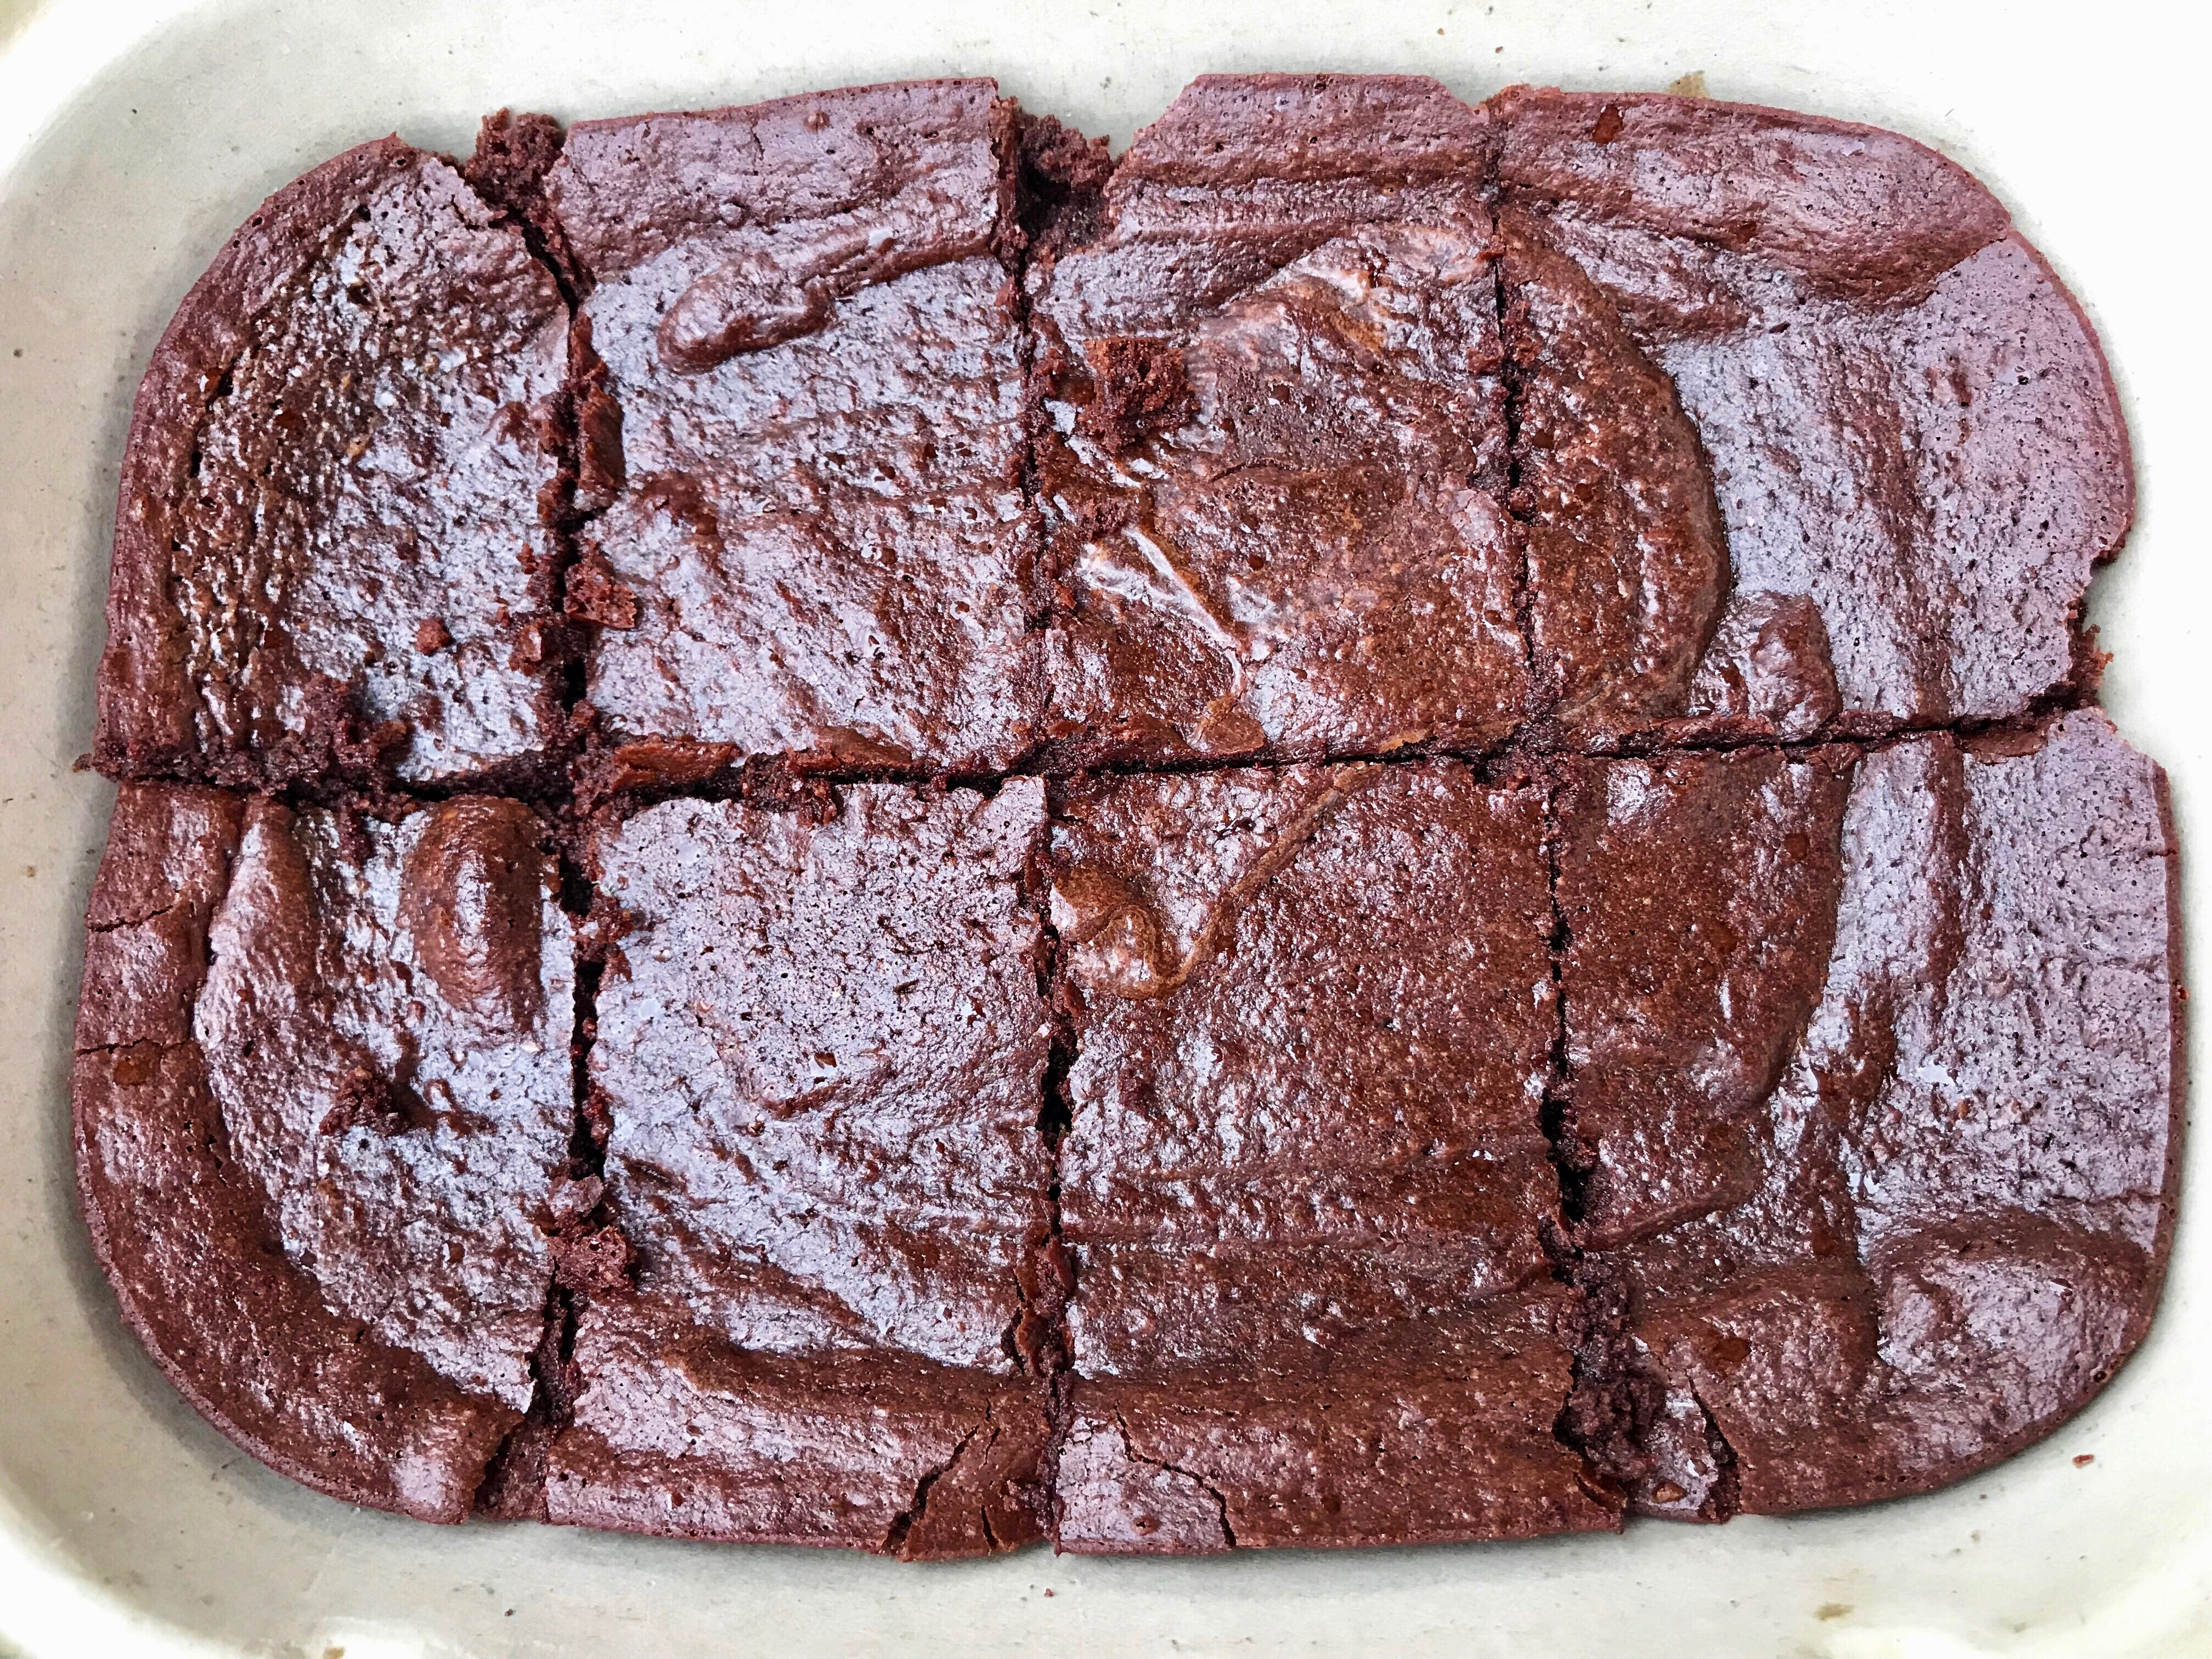 Fittest Brownies (pan of 8 brownies)